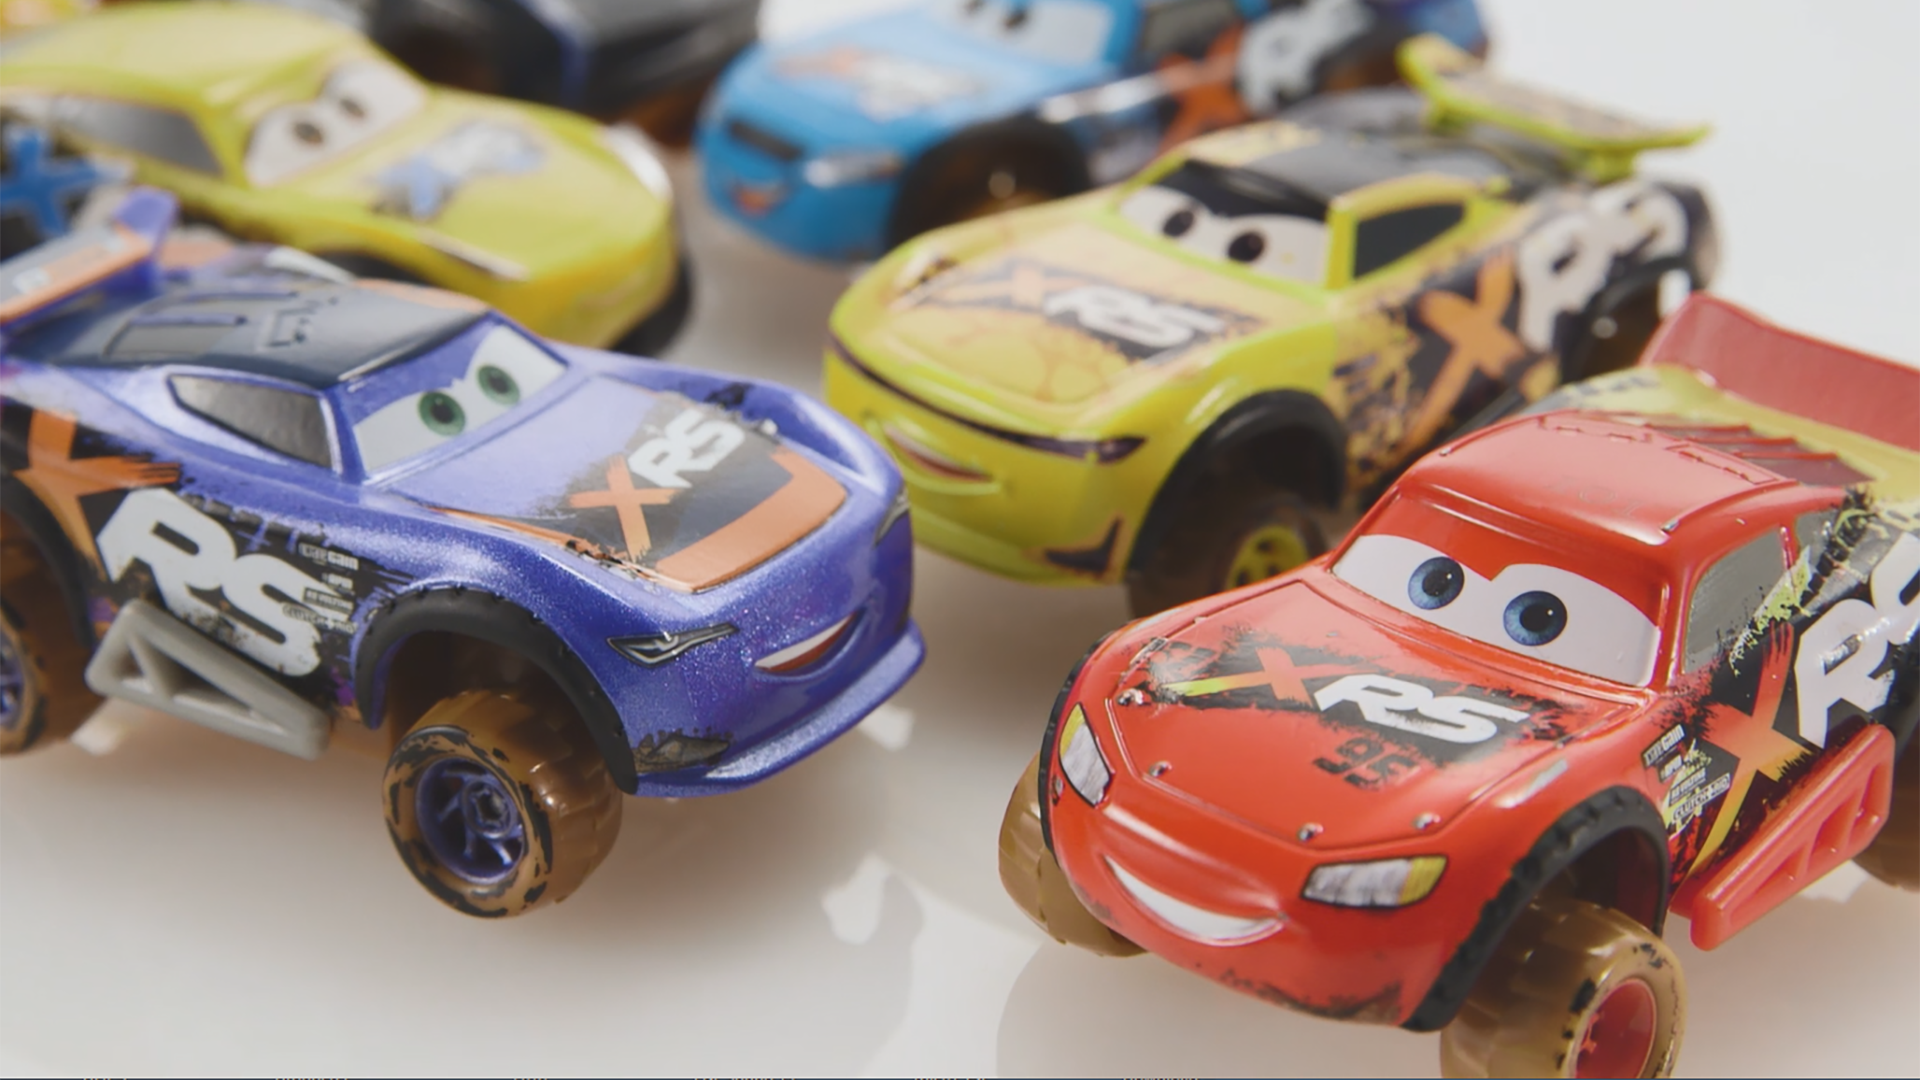 Disney Pixar Cars Xrs Mud Racing Lighting Mcqueen Die Cast Vehicle